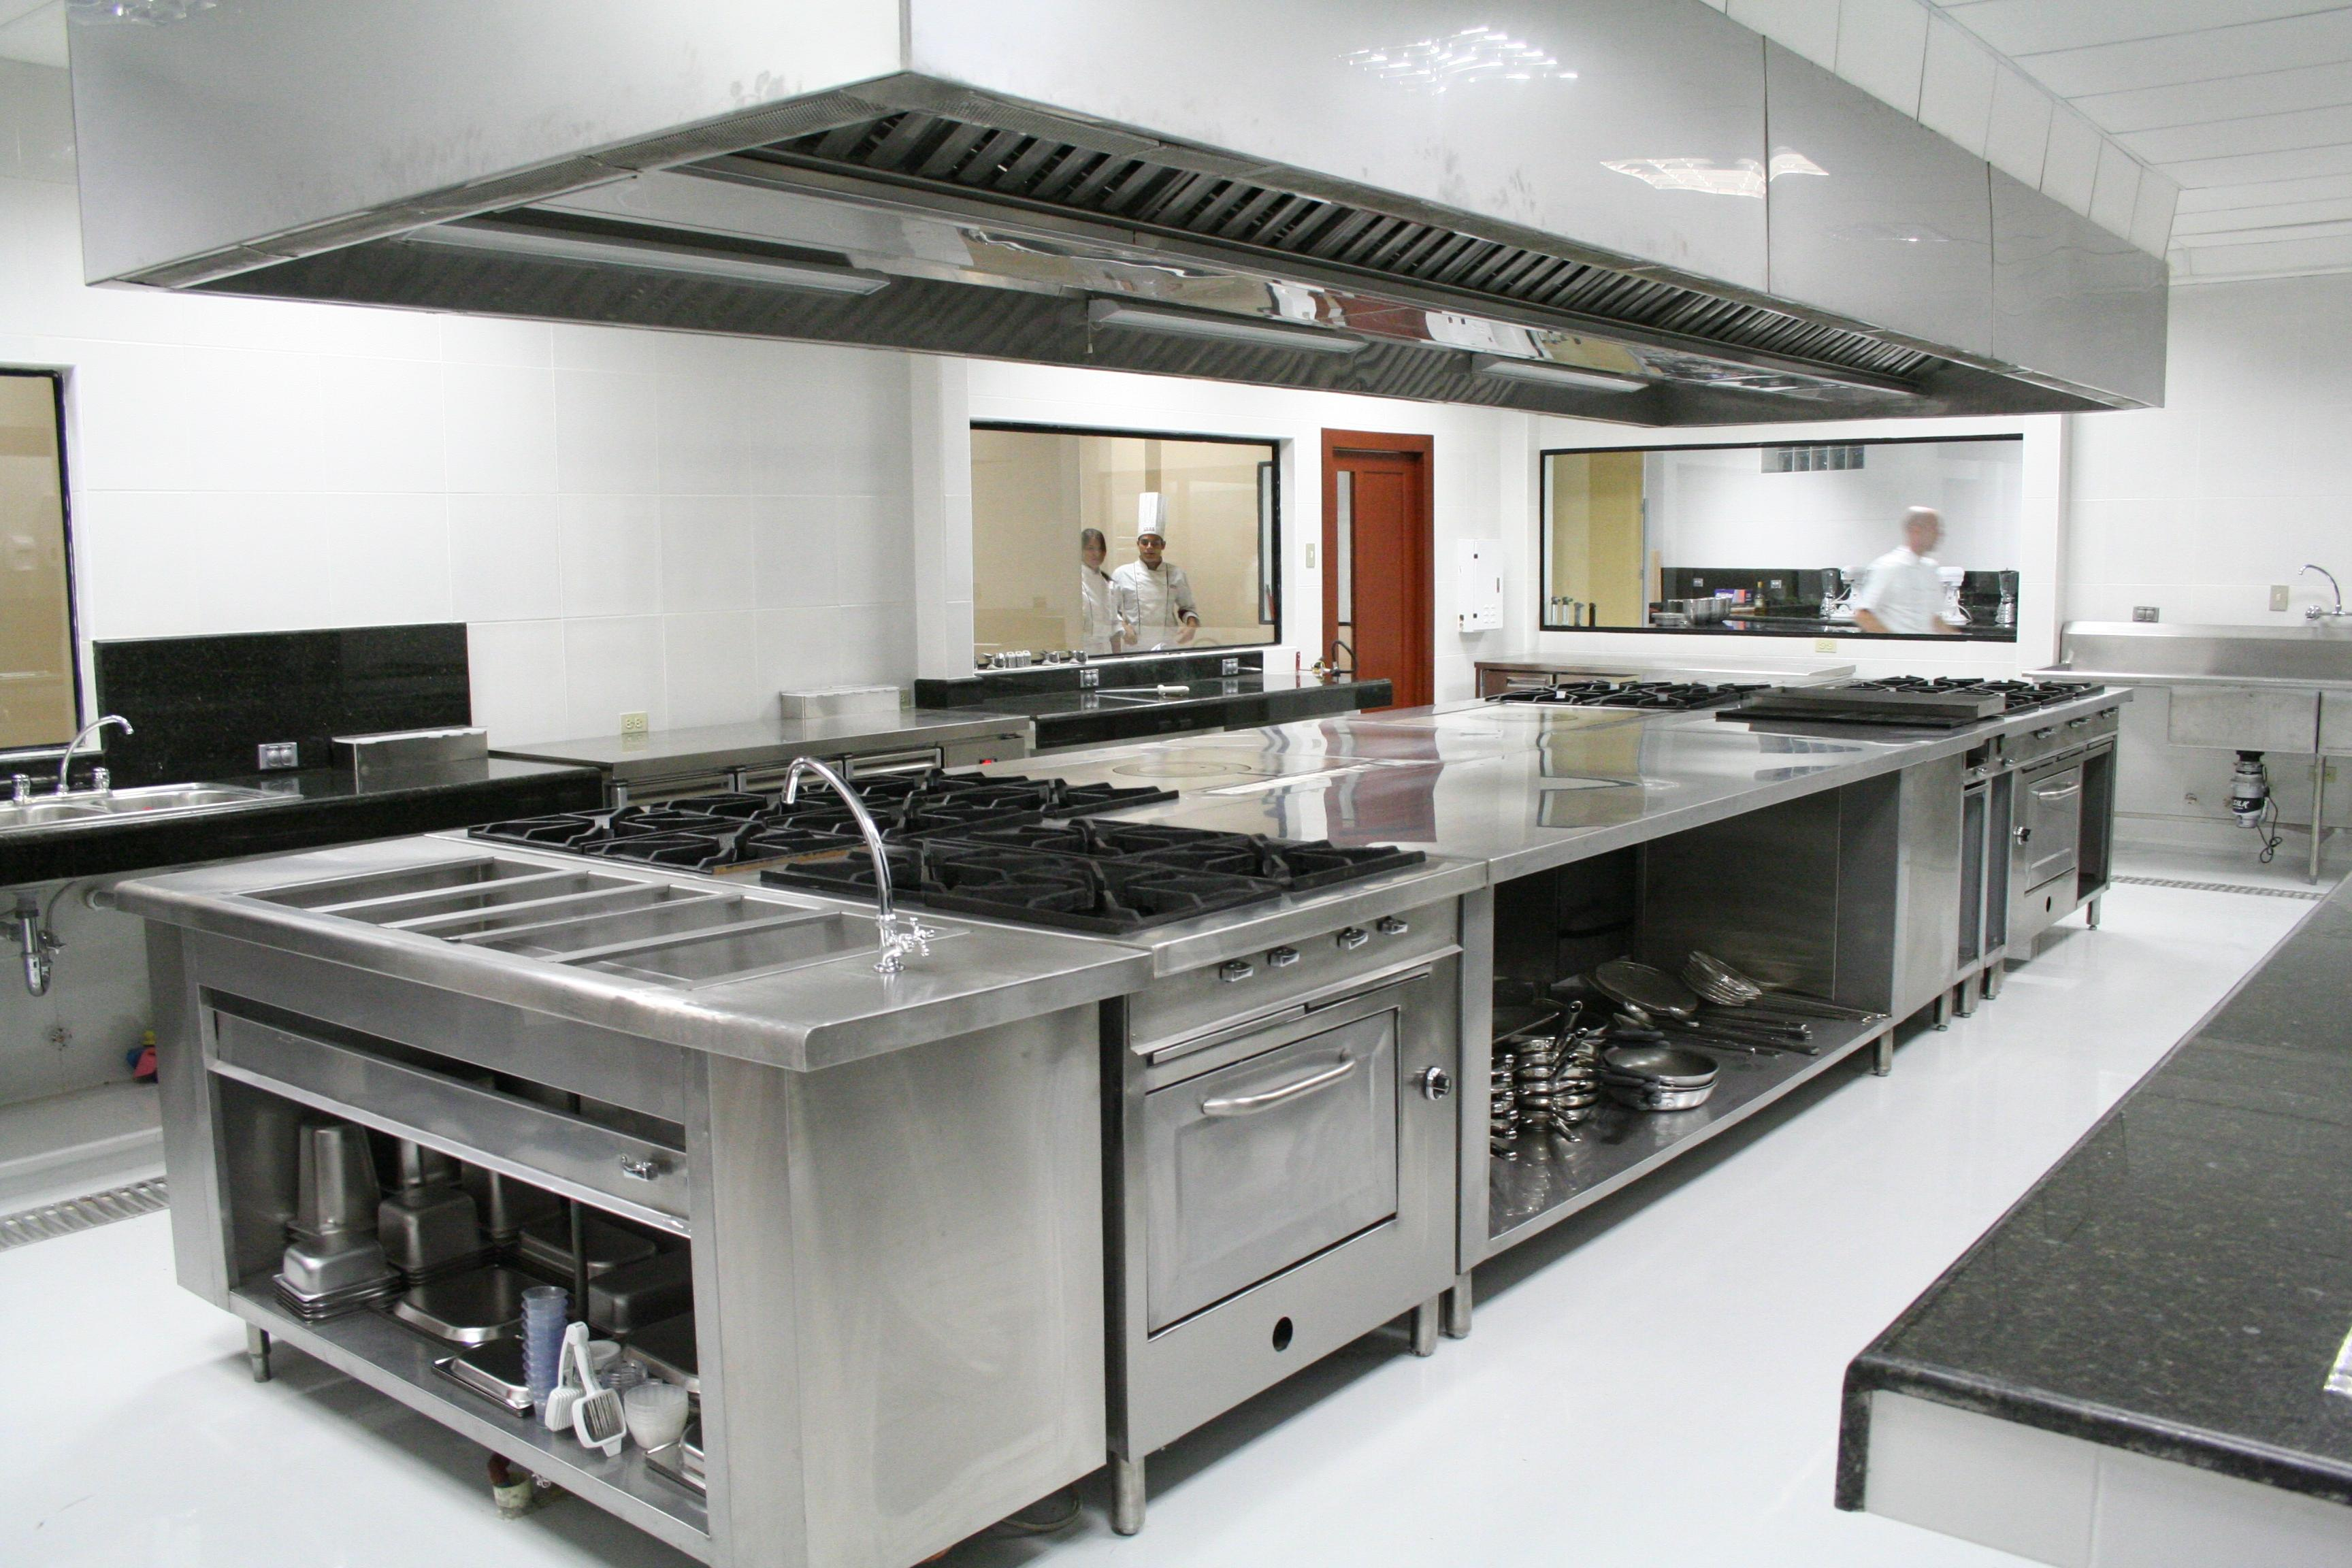 How to plan a commercial kitchen design? | HireRush